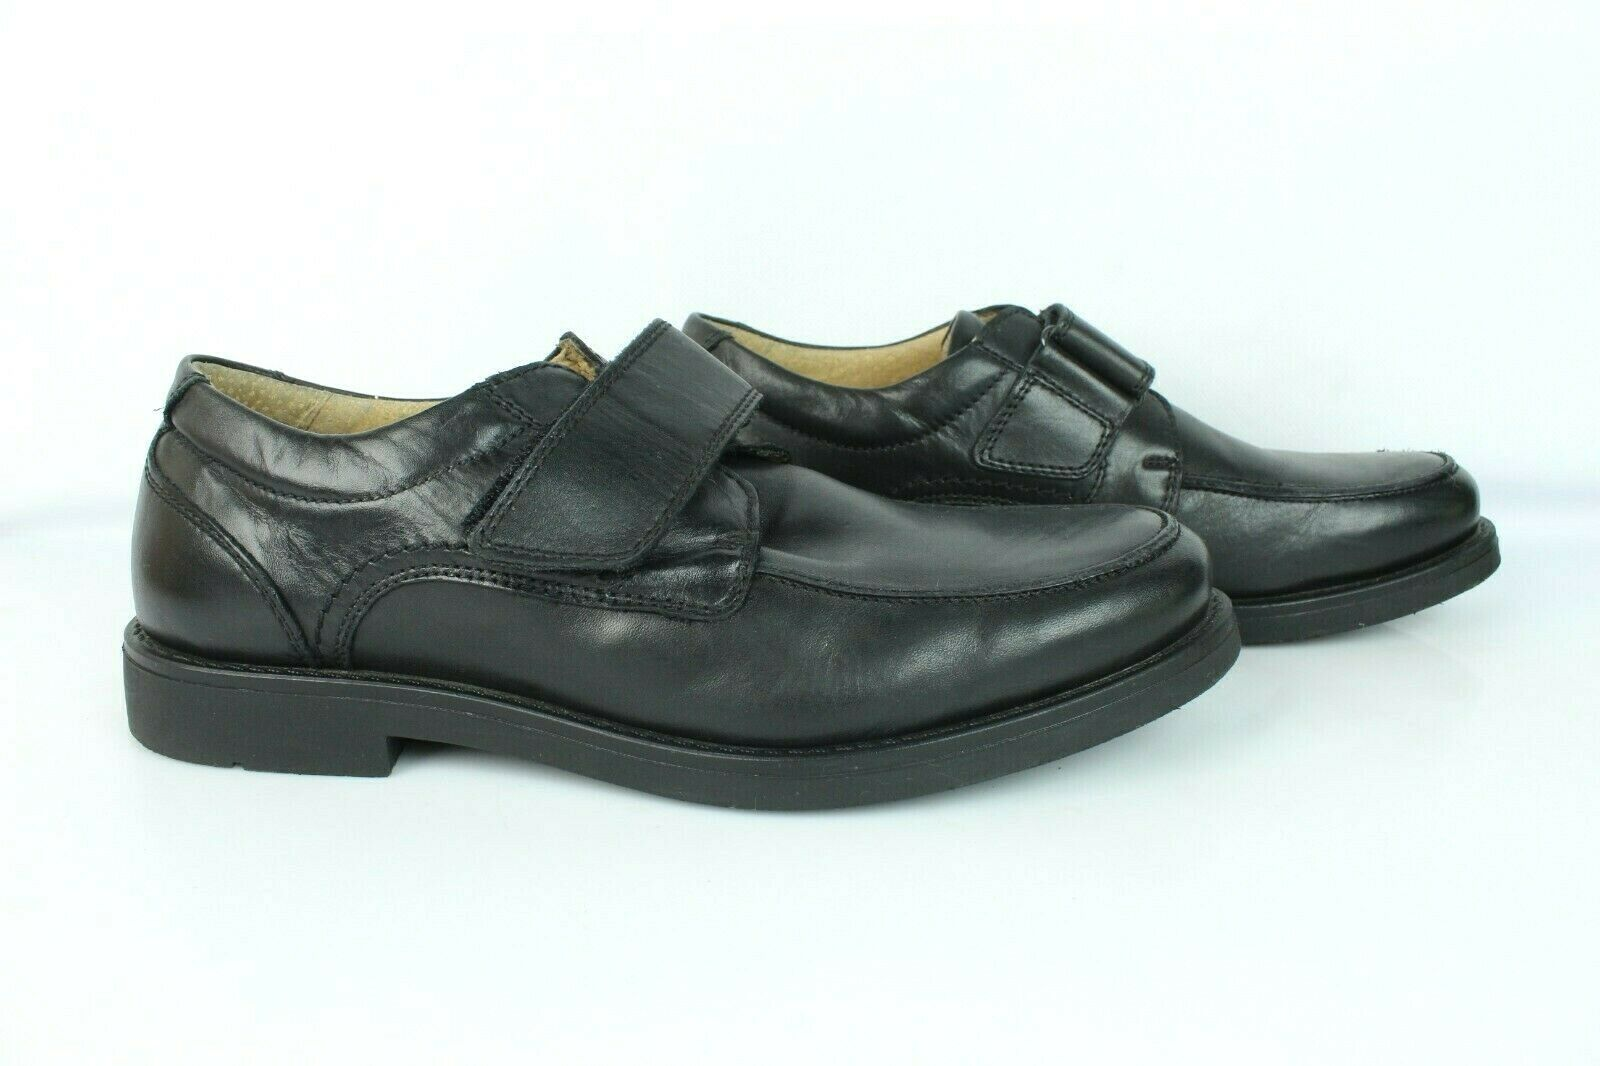 Mocassin G Club Black Leather T 42/UK 8 Very Good Condition